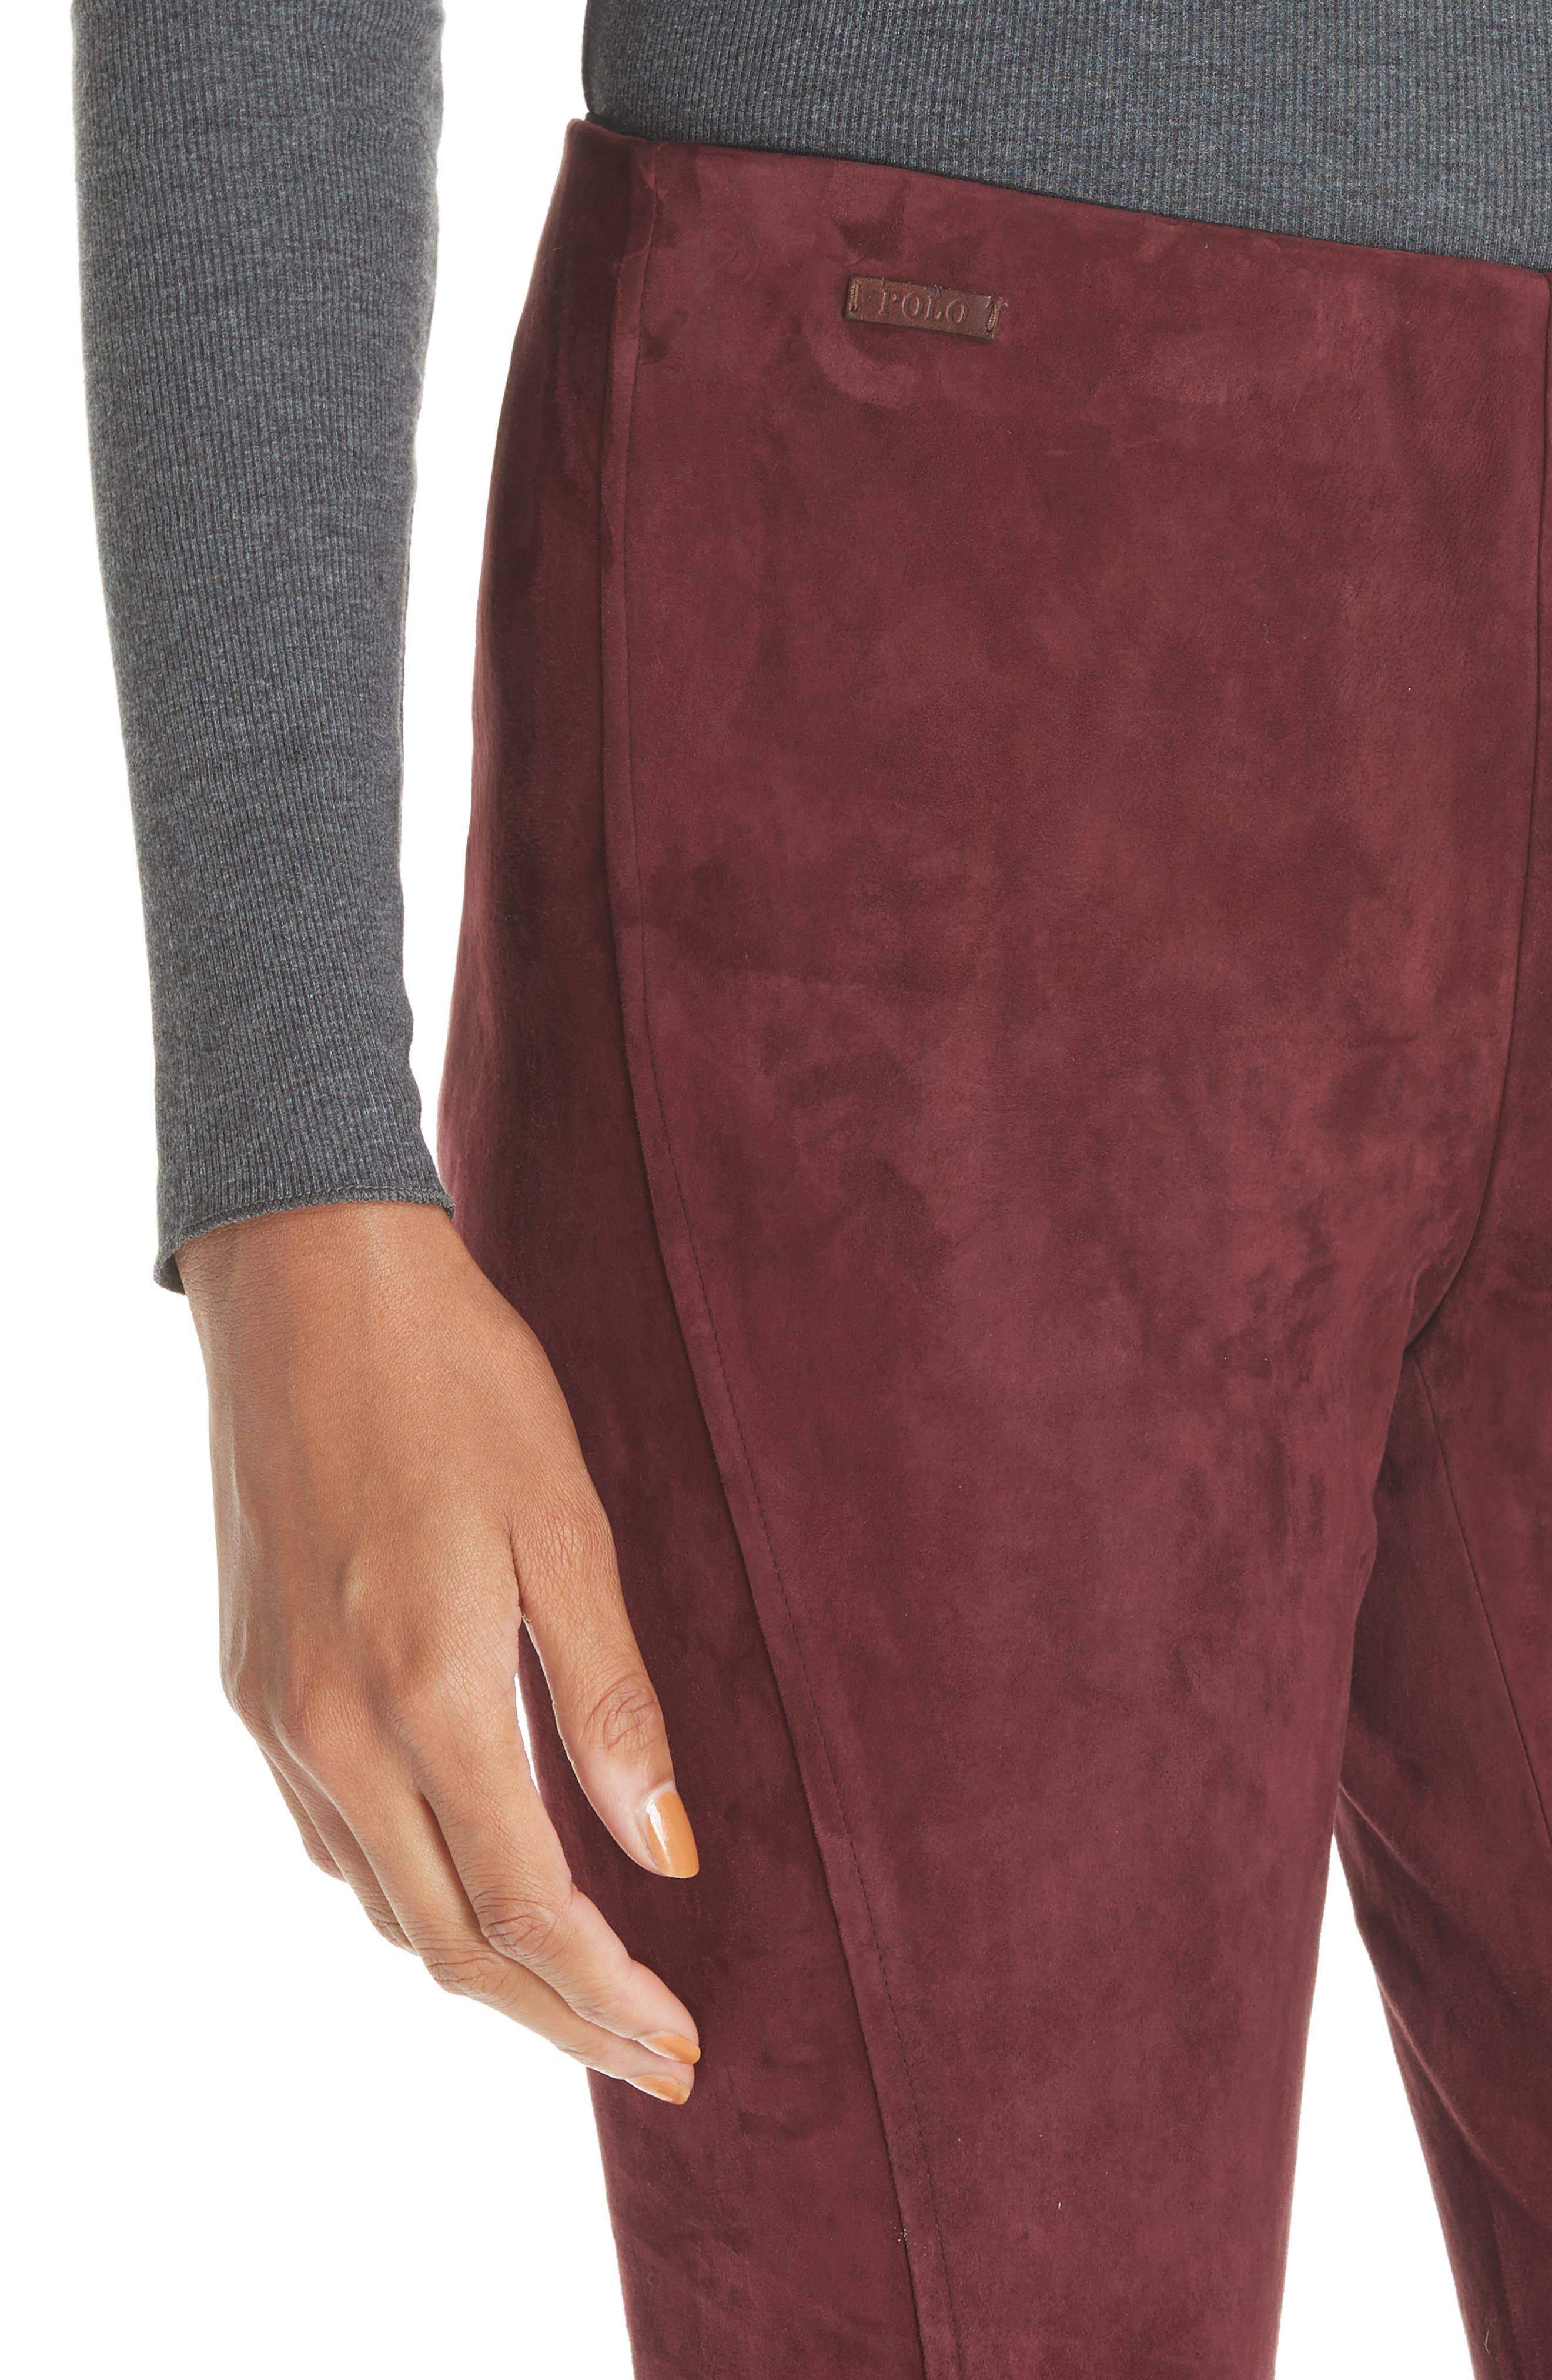 POLO RALPH LAUREN,                             Pull-On Skinny Suede Pants,                             Alternate thumbnail 4, color,                             930